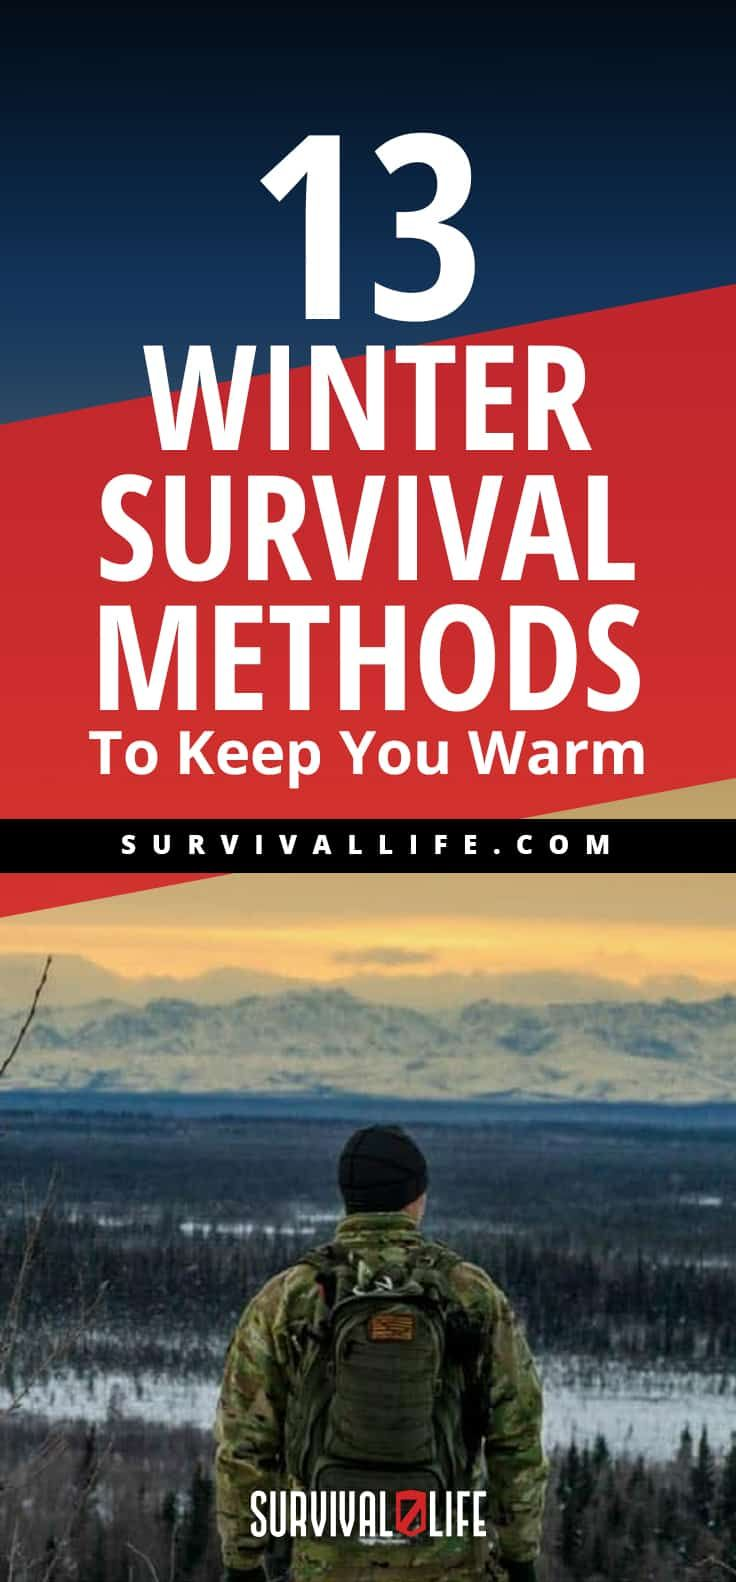 13 Winter Survival Methods To Keep You Warm